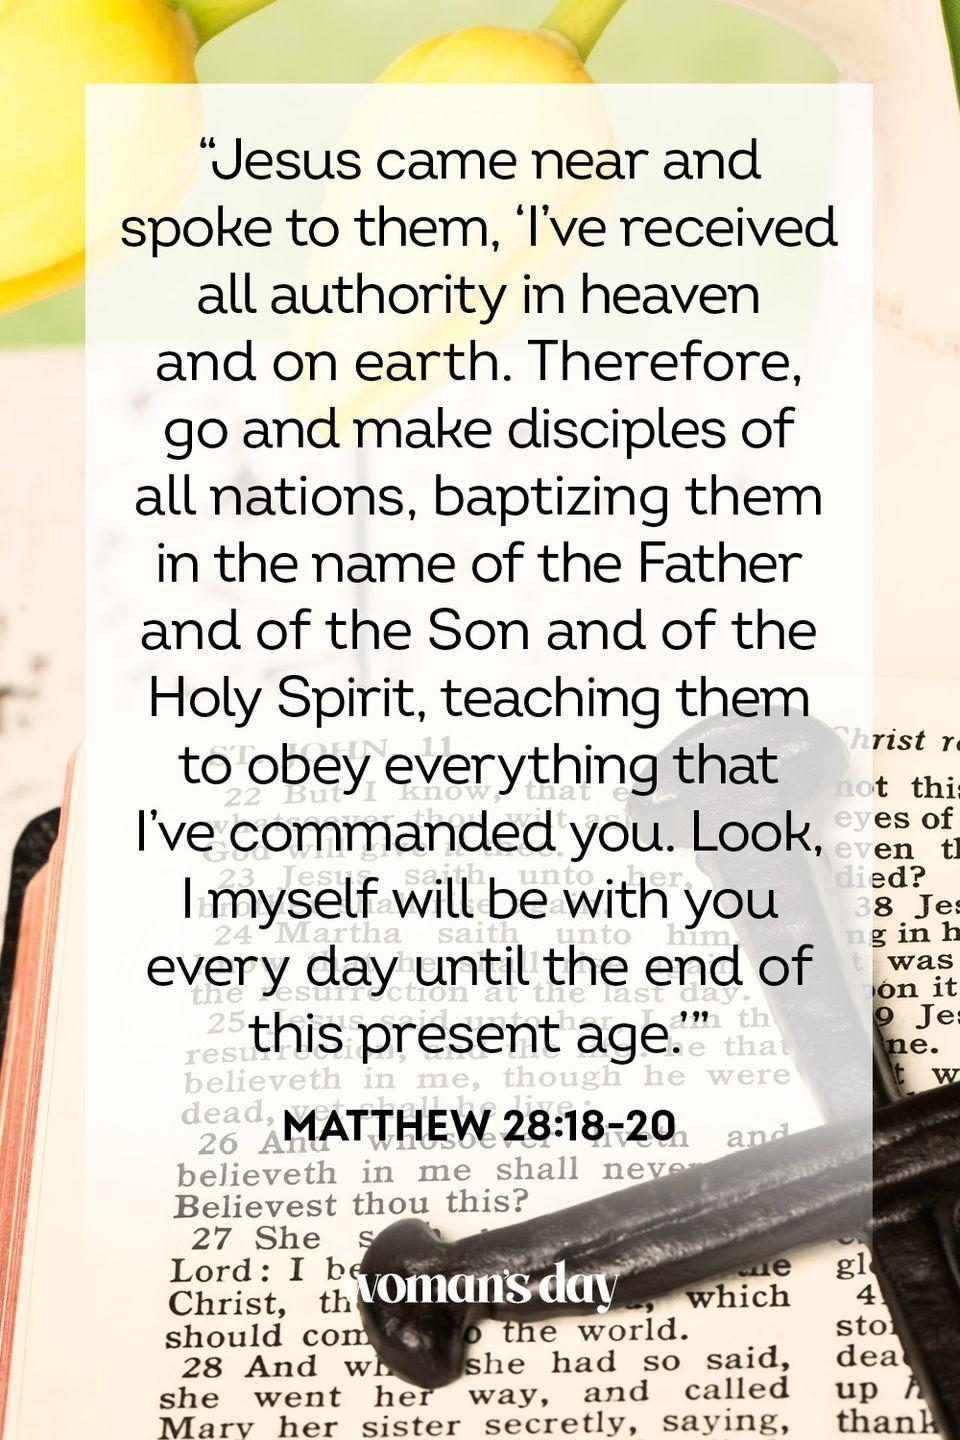 "<p>""Jesus came near and spoke to them, 'I've received all authority in heaven and on earth. Therefore, go and make disciples of all nations, baptizing them in the name of the Father and of the Son and of the Holy Spirit, teaching them to obey everything that I've commanded you. Look, I myself will be with you every day until the end of this present age.'""— Matthew 28:18-20</p>"